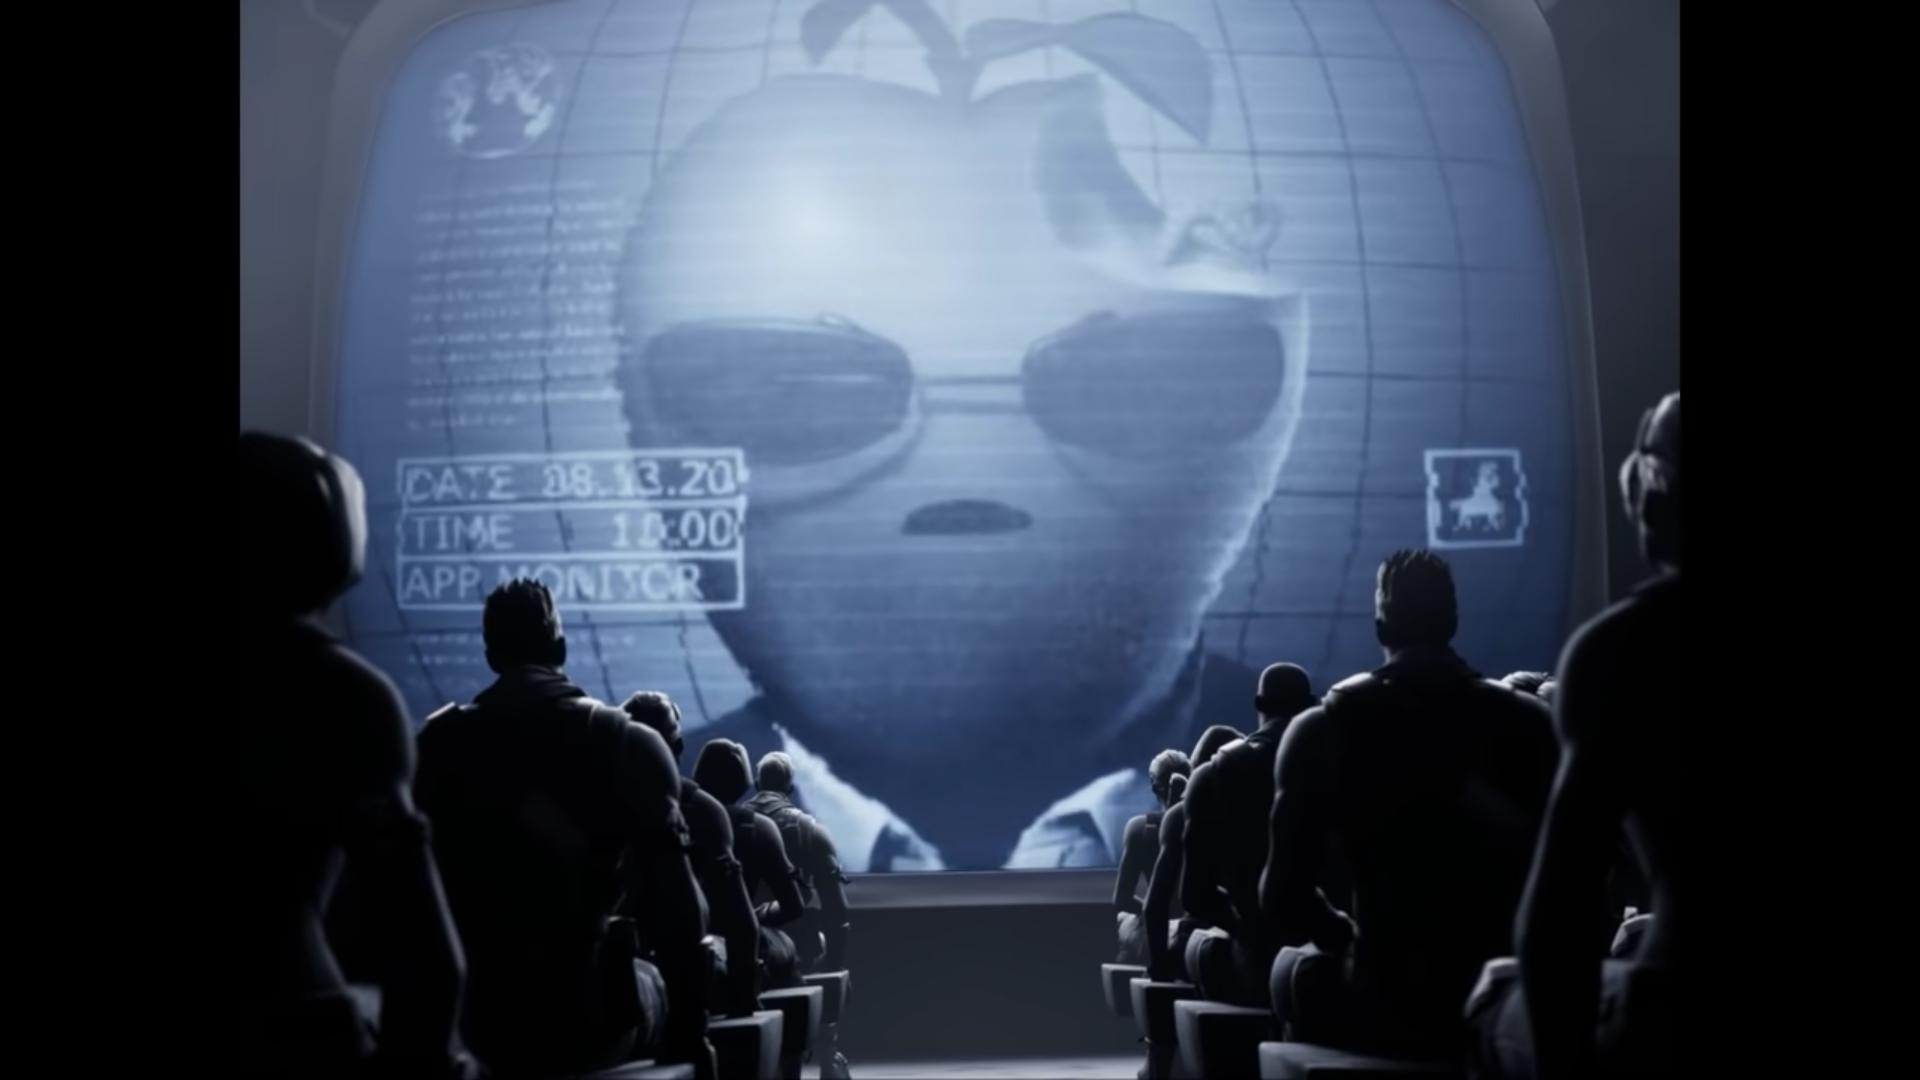 A large totalitarian Apple with sunglasses addresses an audience of mind-numbed Fortnite characters